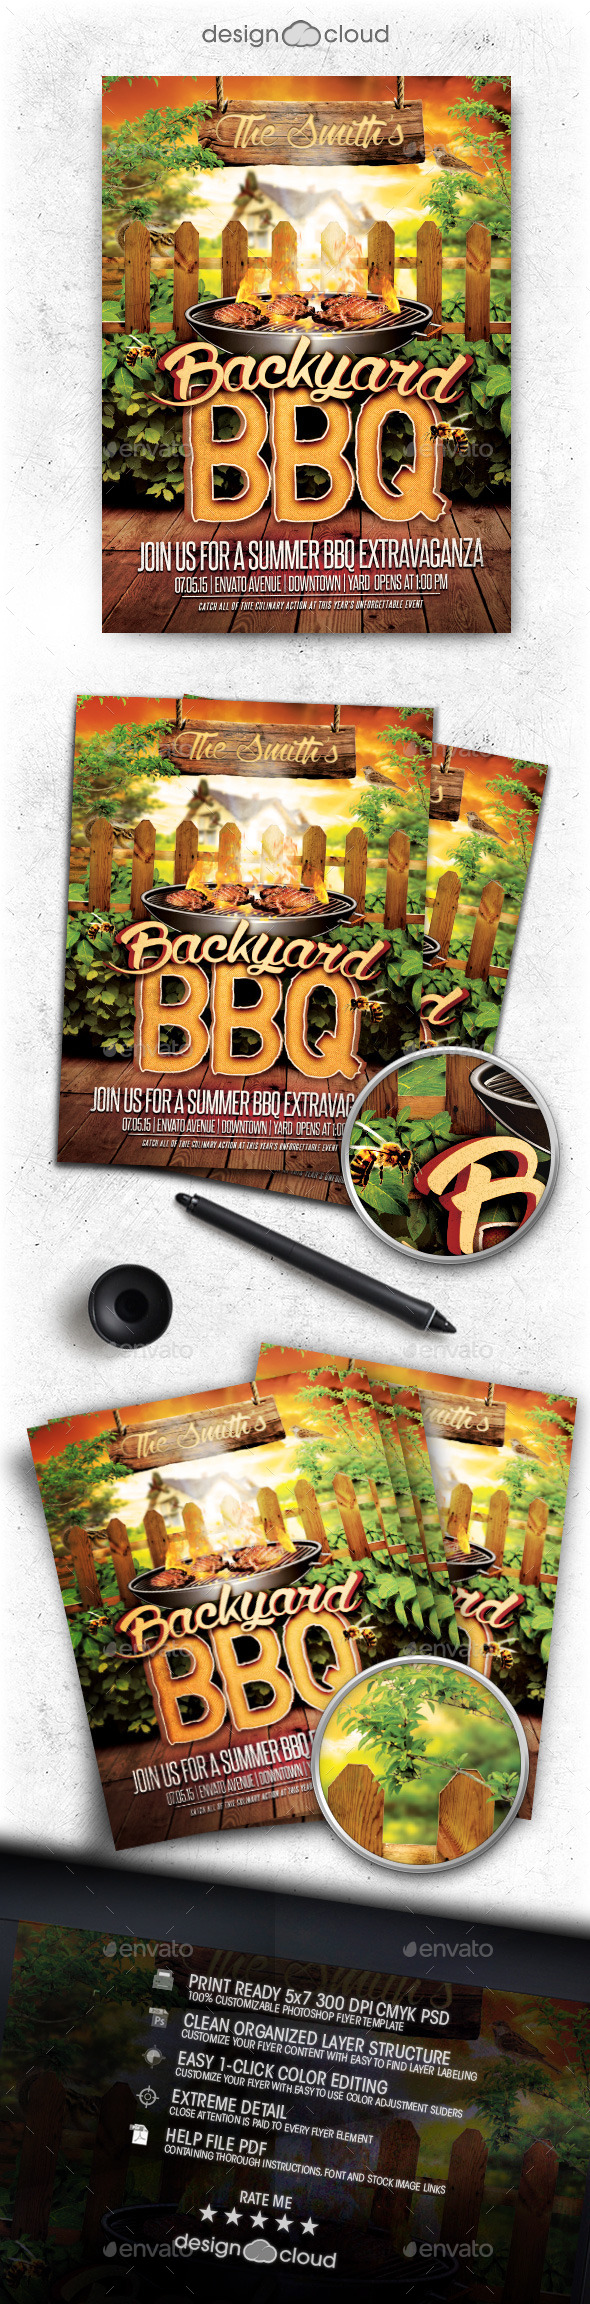 GraphicRiver Backyard BBQ Flyer Template 11488623